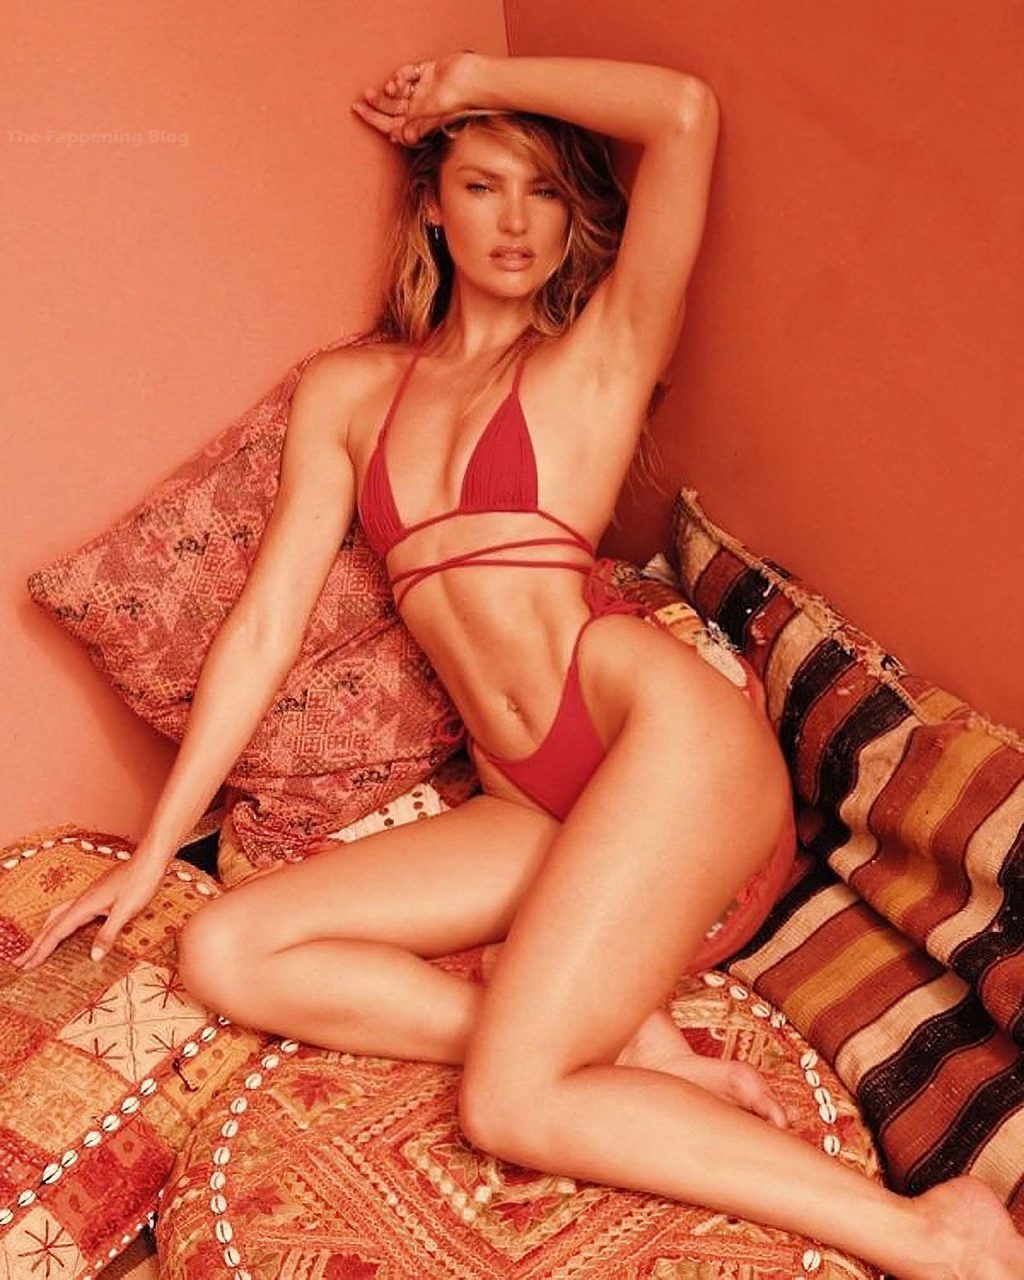 Candice Swanepoel Poses for a New Swimwear Campaign (13 Photos)